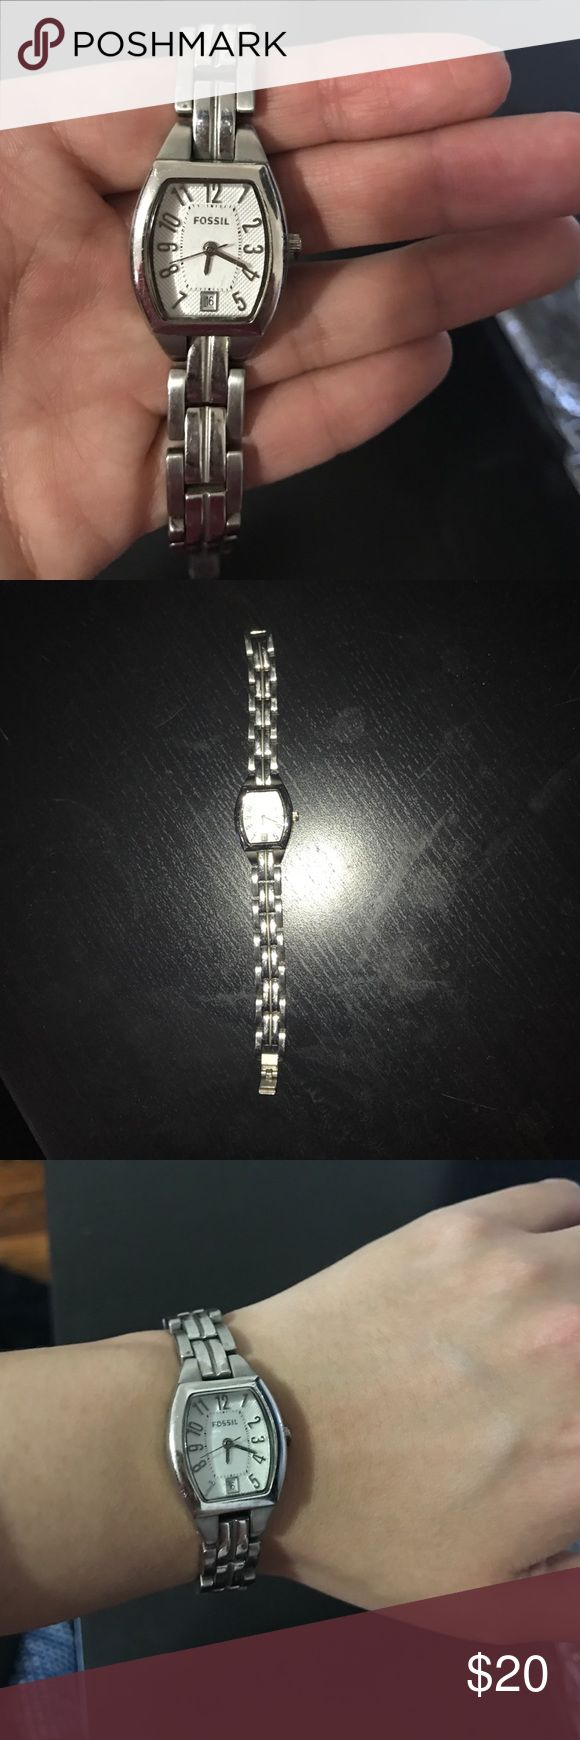 Fossil Watch (used) Used fossil watch. Just needs a battery replacement Jewelry